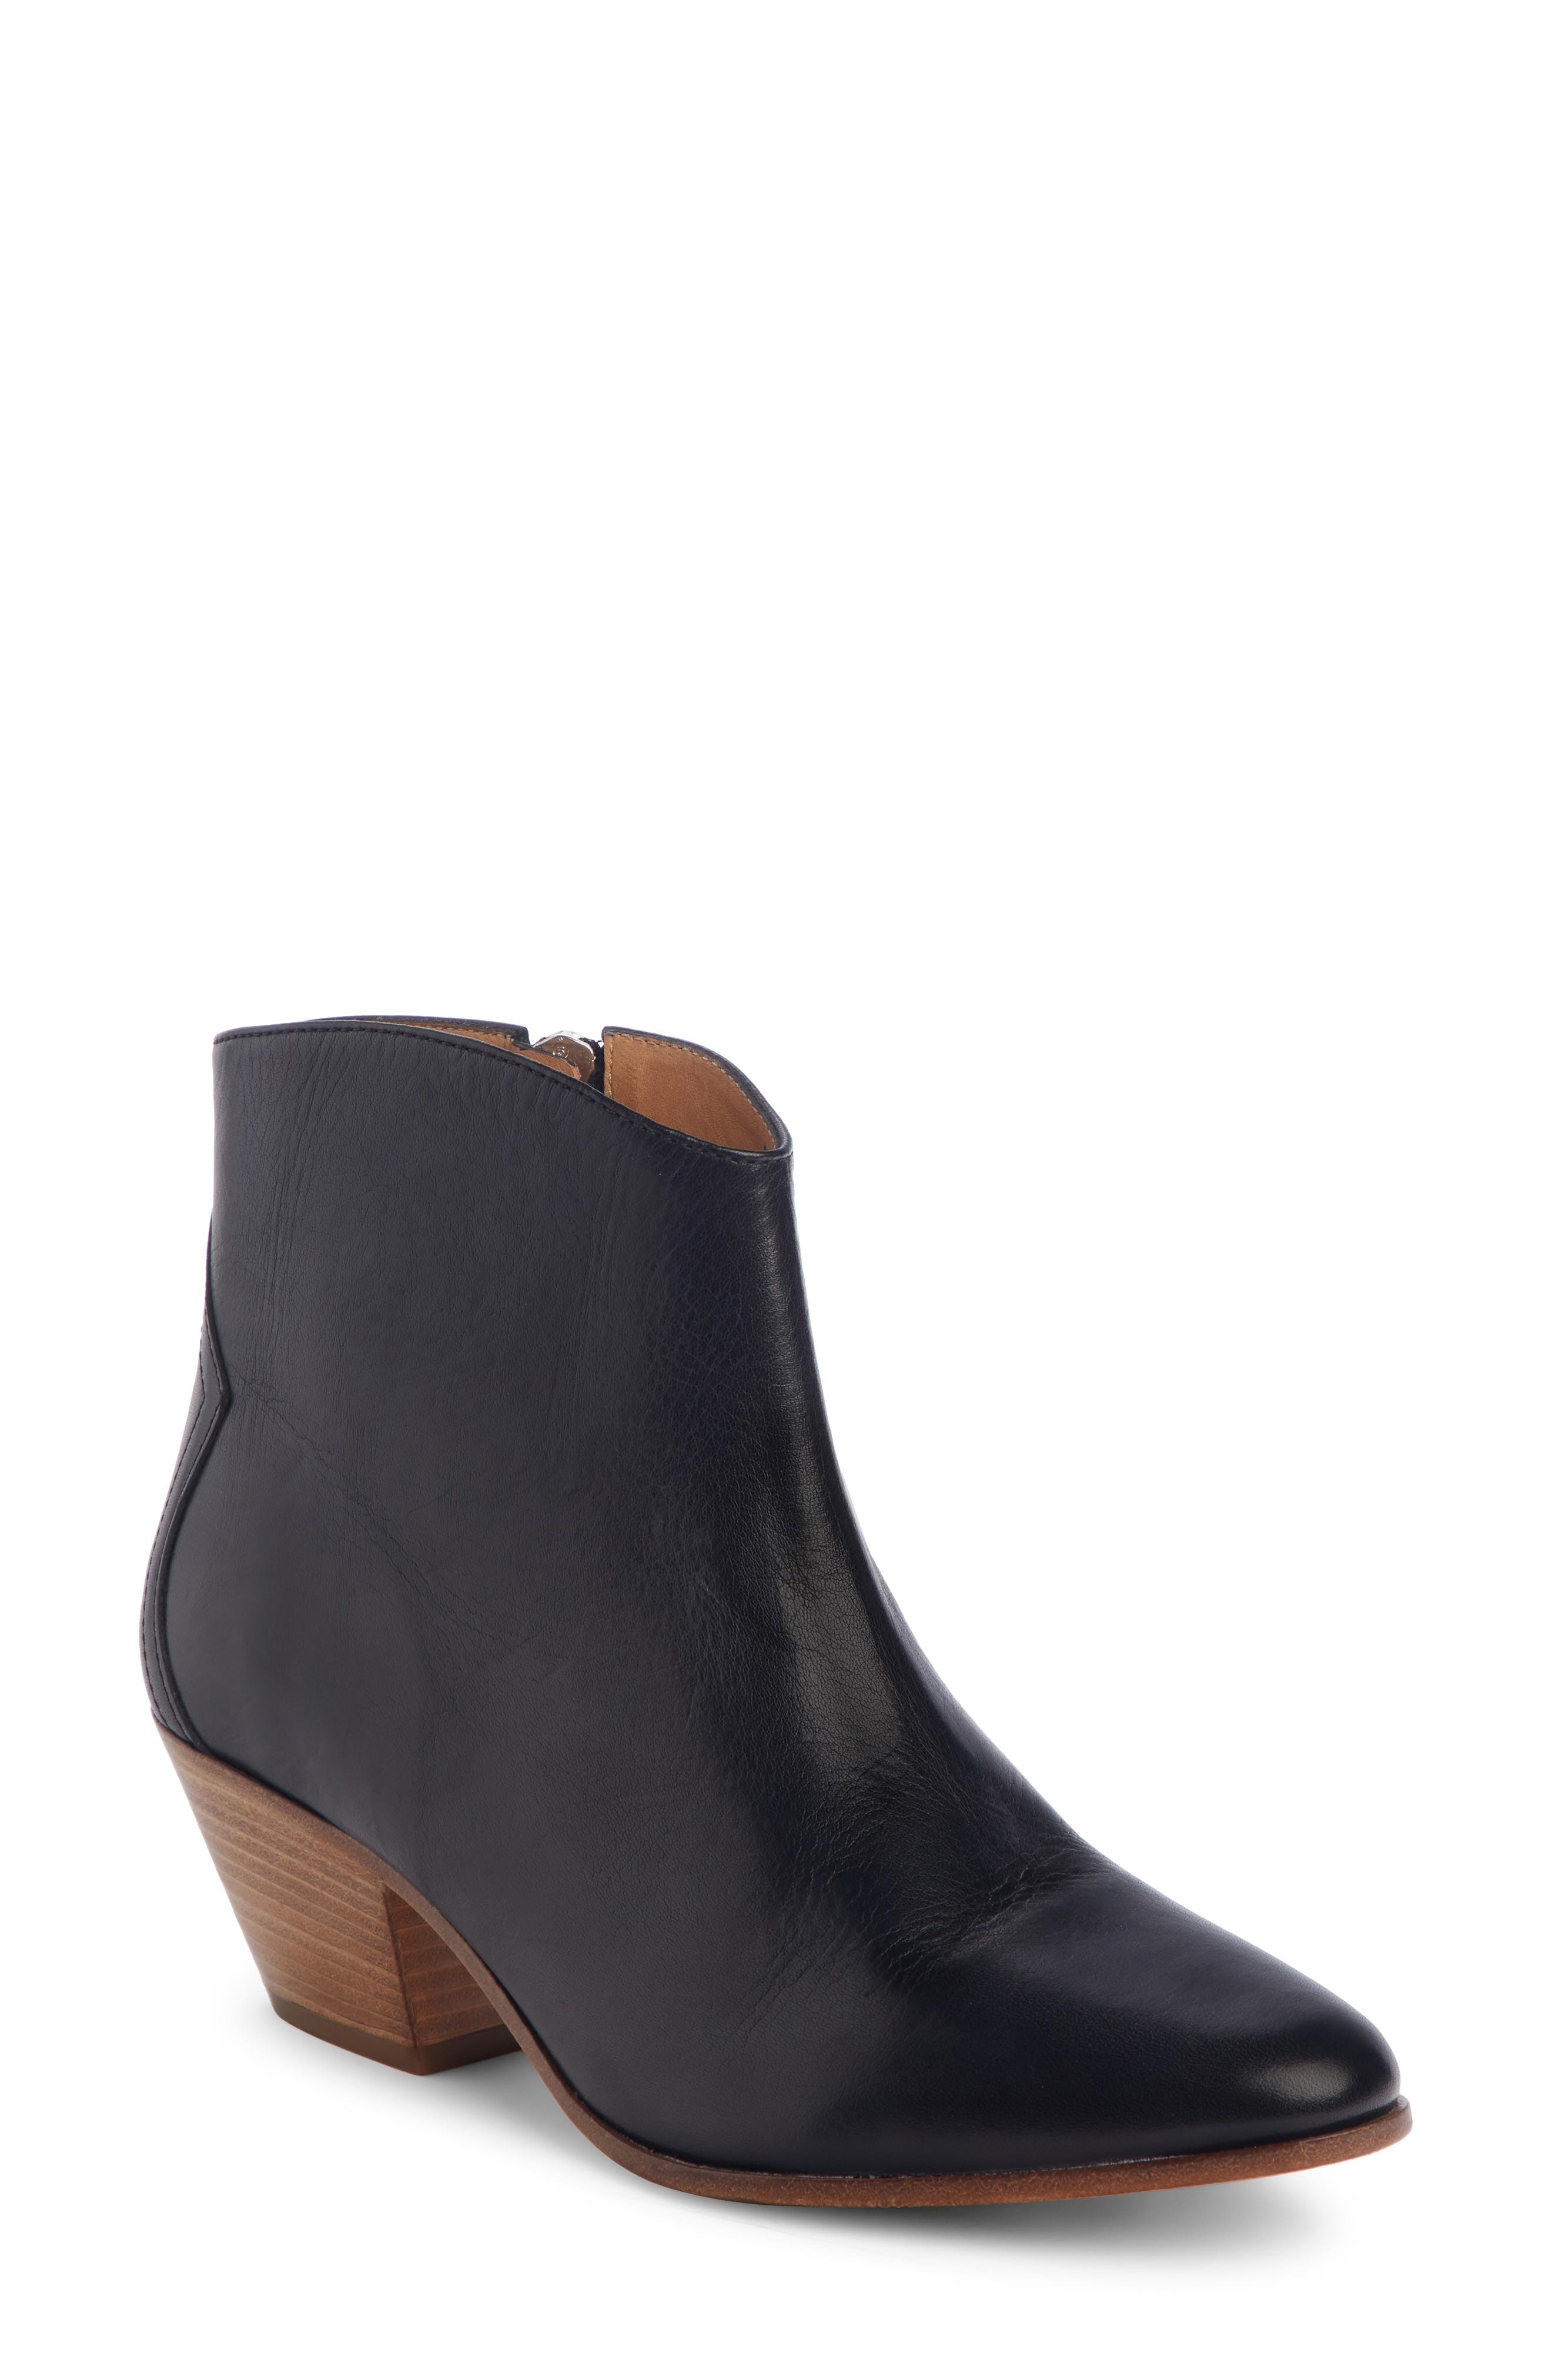 Dacken Bootie,                             Main thumbnail 1, color,                             BLACK LEATHER